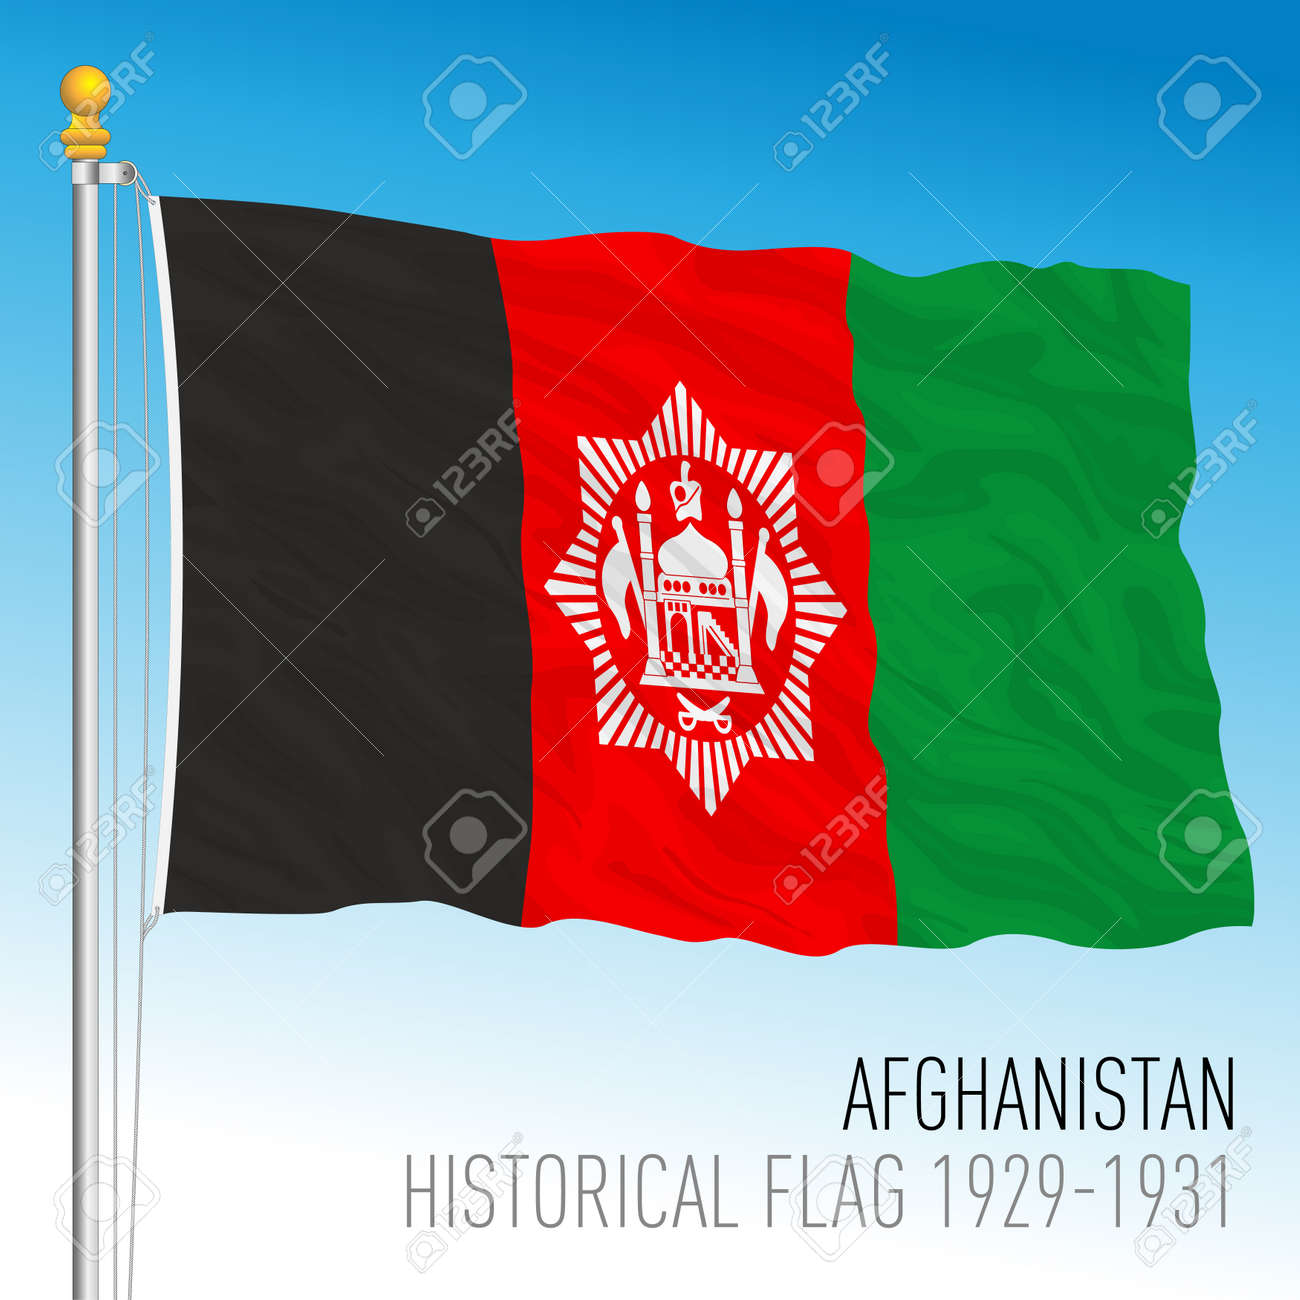 Afghanistan historical flag, years 1929 to 1931, asiatic country, vector illustration - 173297072